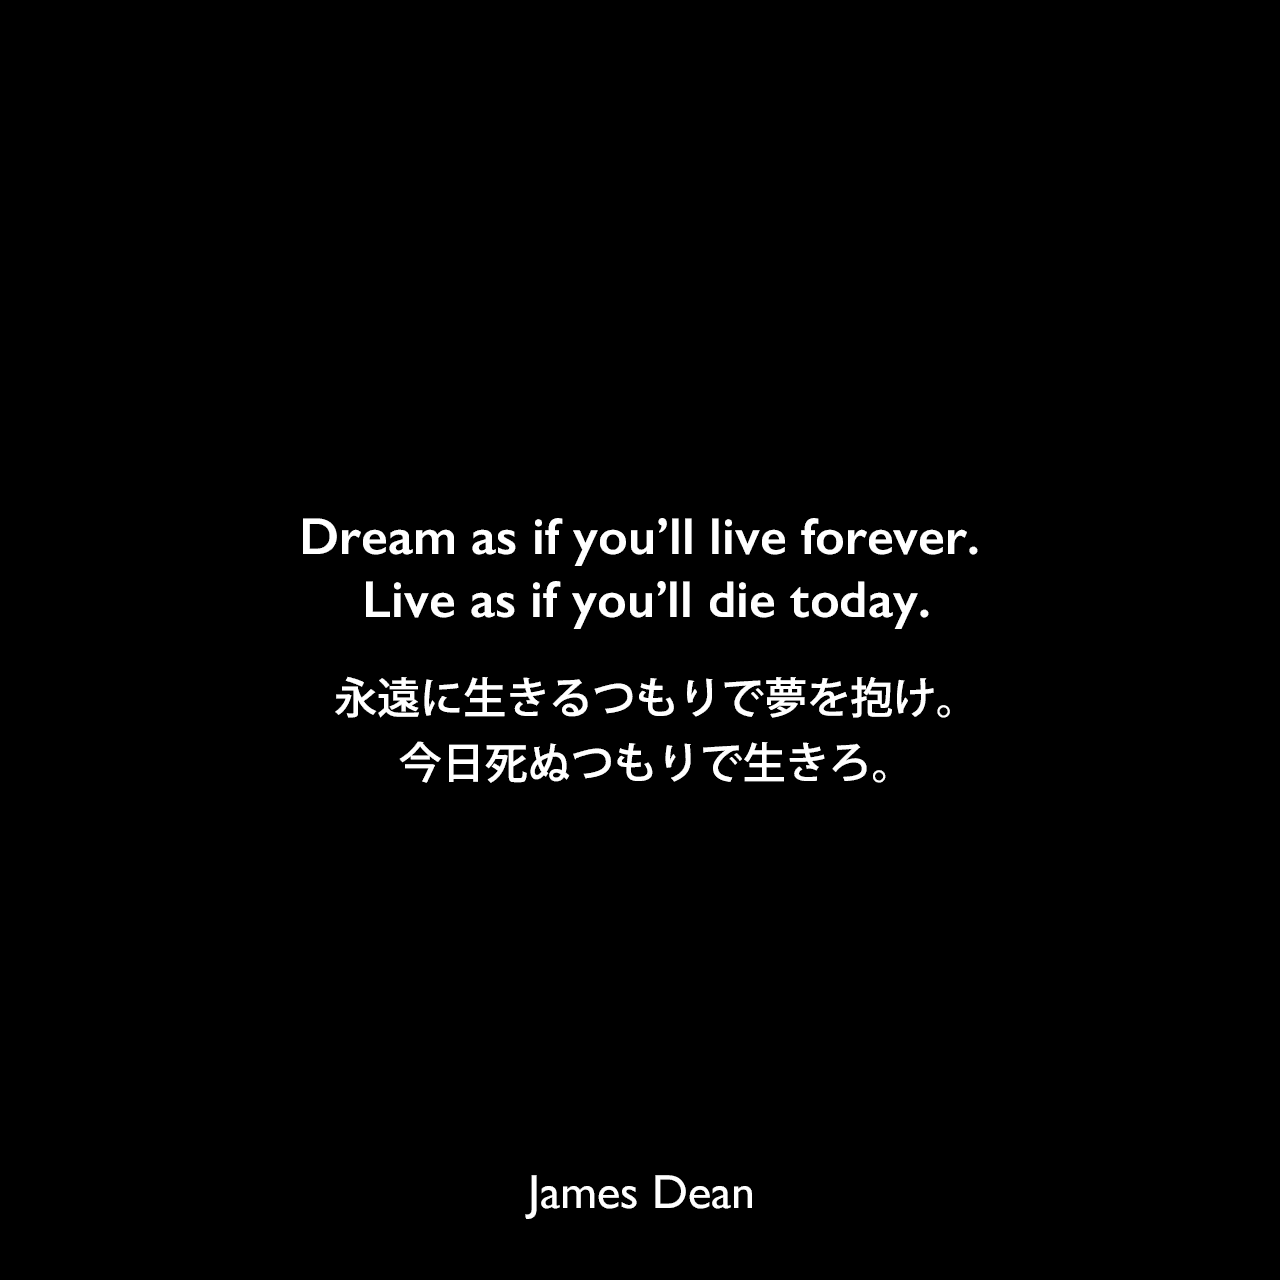 Dream as if you'll live forever. Live as if you'll die today.永遠に生きるつもりで夢を抱け。今日死ぬつもりで生きろ。